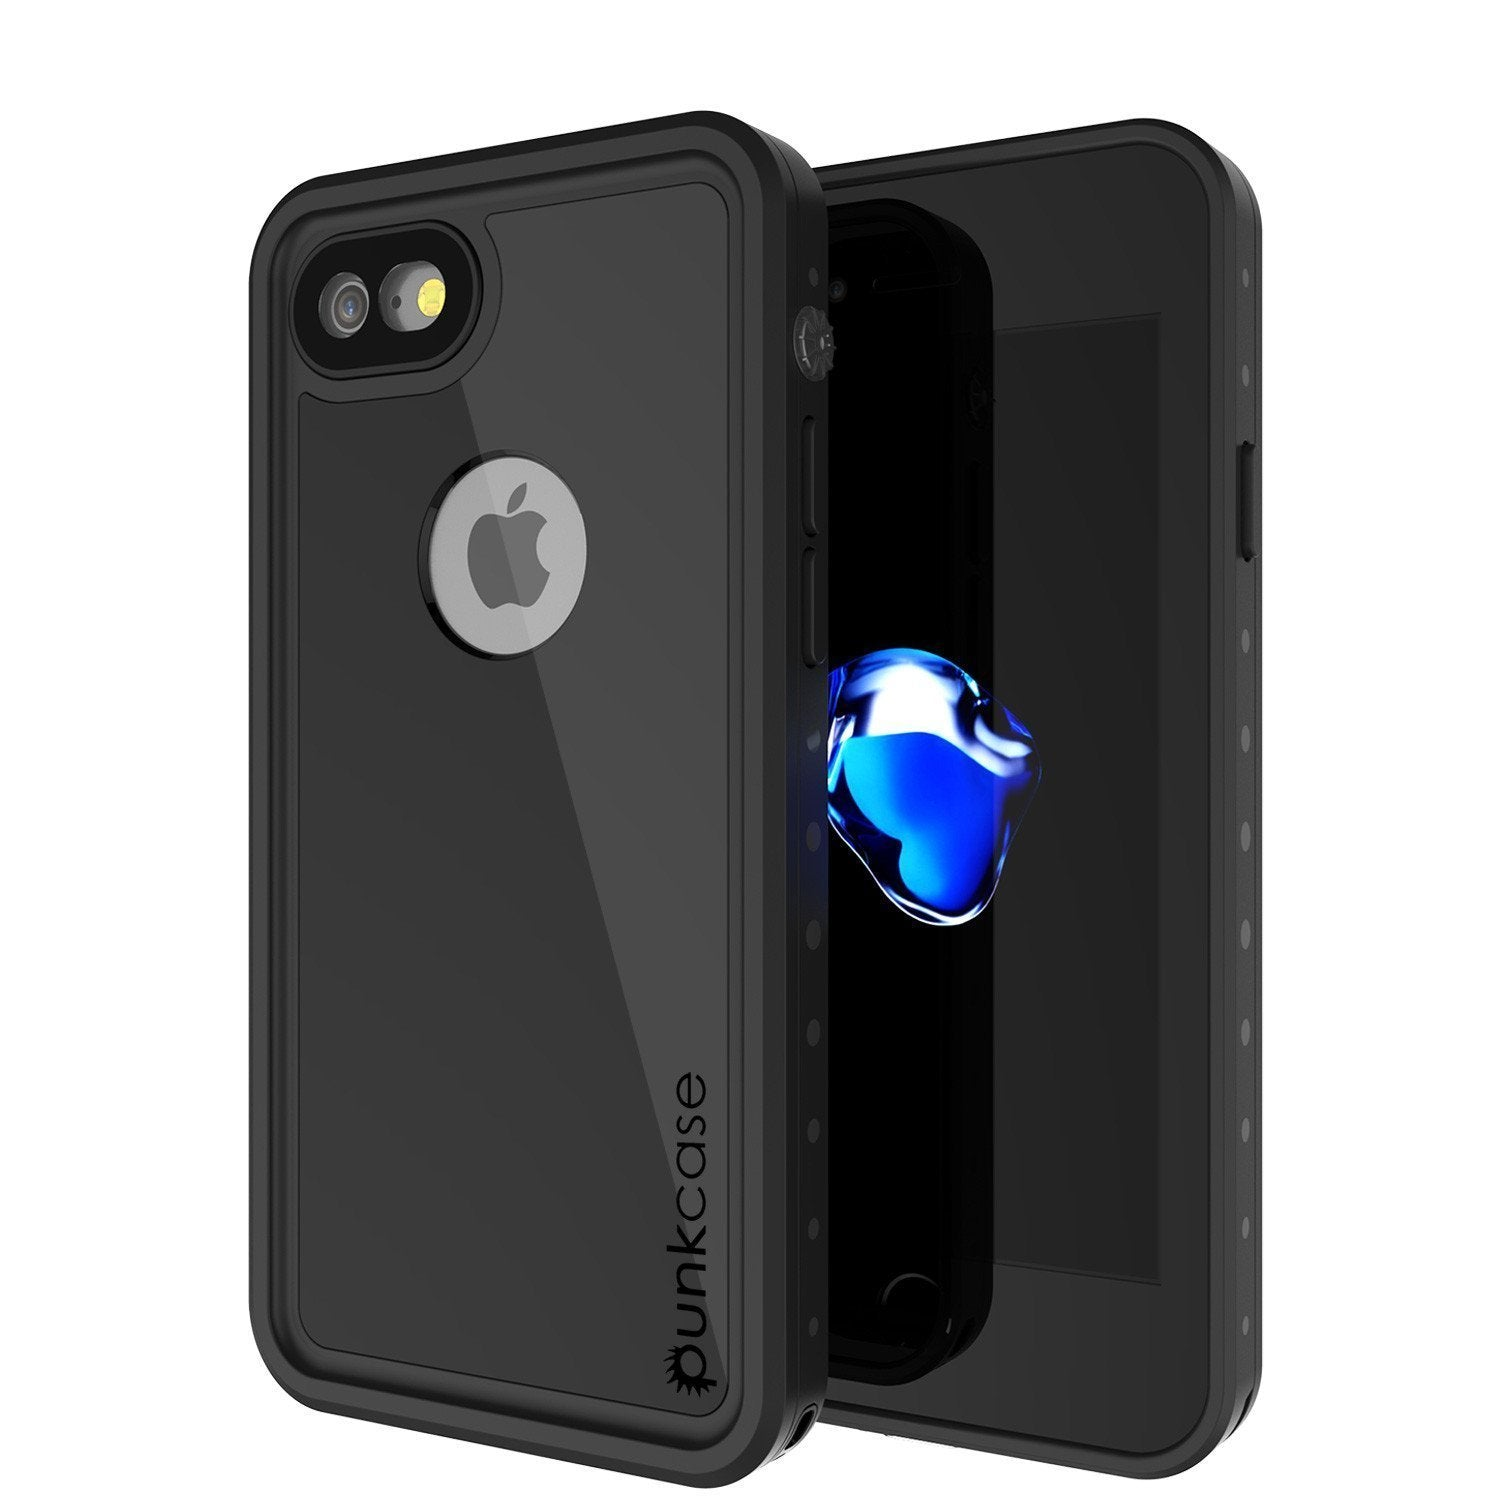 iPhone 8 Waterproof Case, Punkcase [Black] [StudStar Series] [Slim Fit] [IP68 Certified][Dirtproof] [Snowproof]